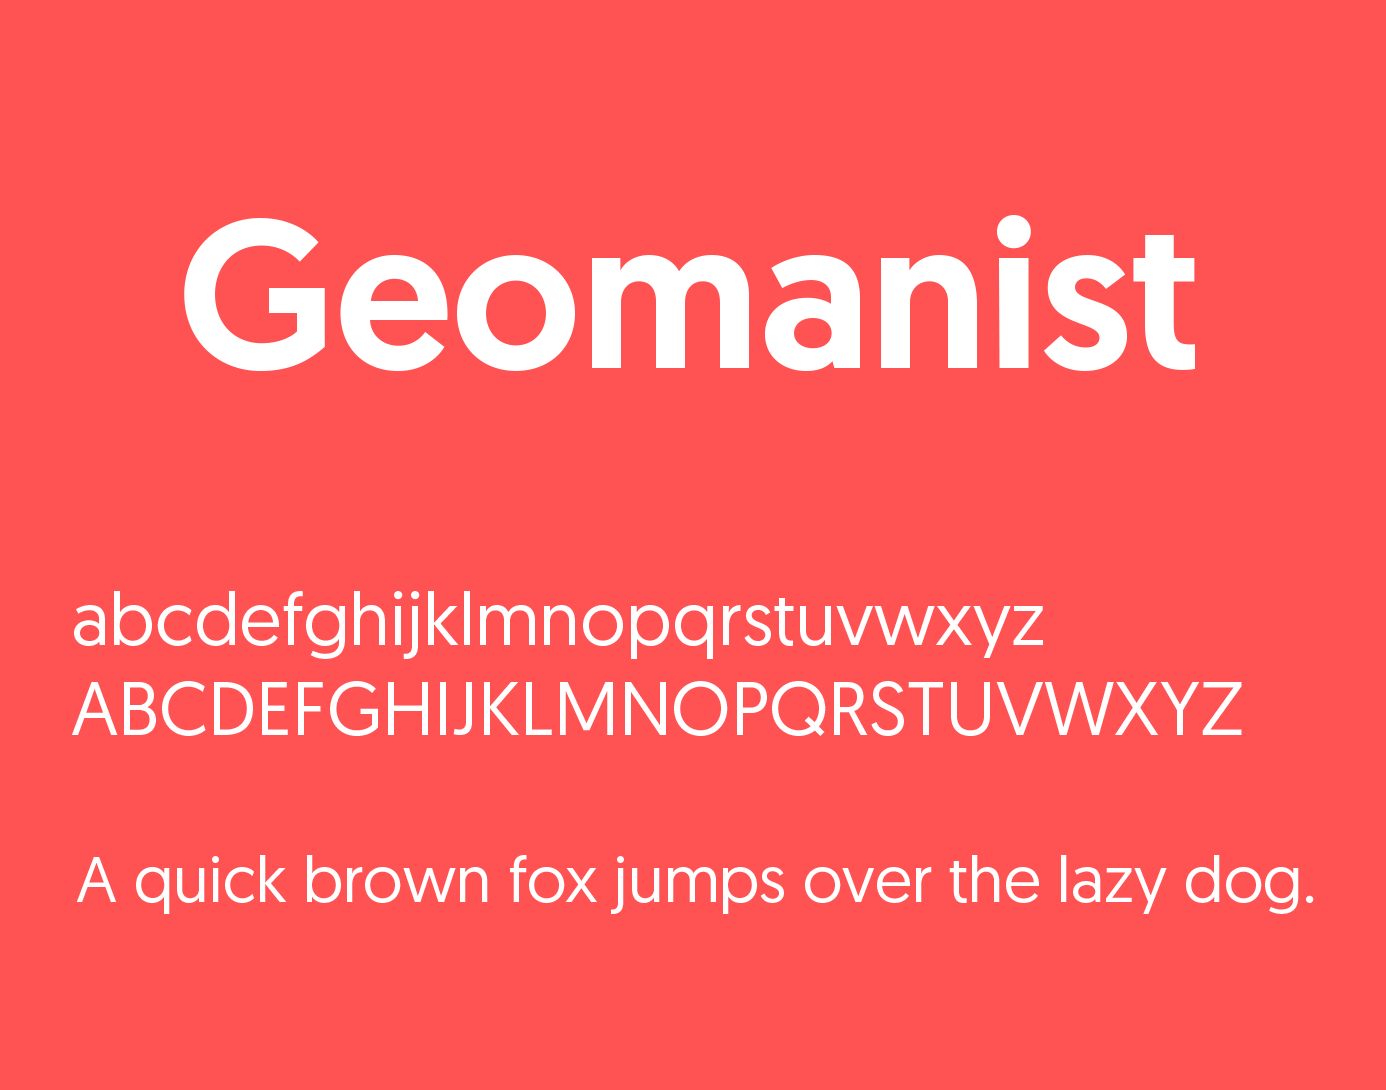 Geomanist Font Free Download